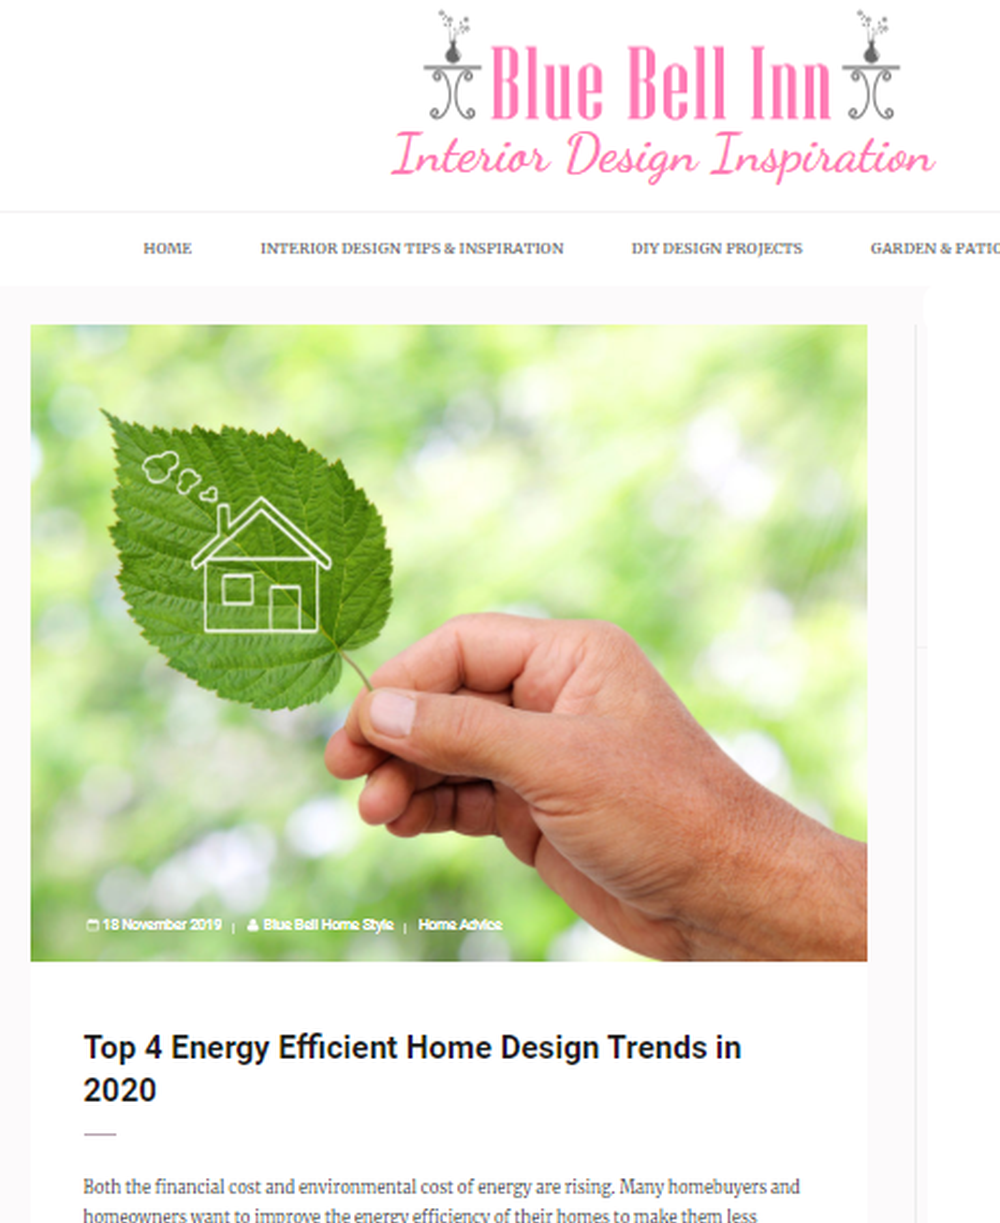 Energy Efficient Home Design Trends in 2020 - Interior Design Inspiration.png